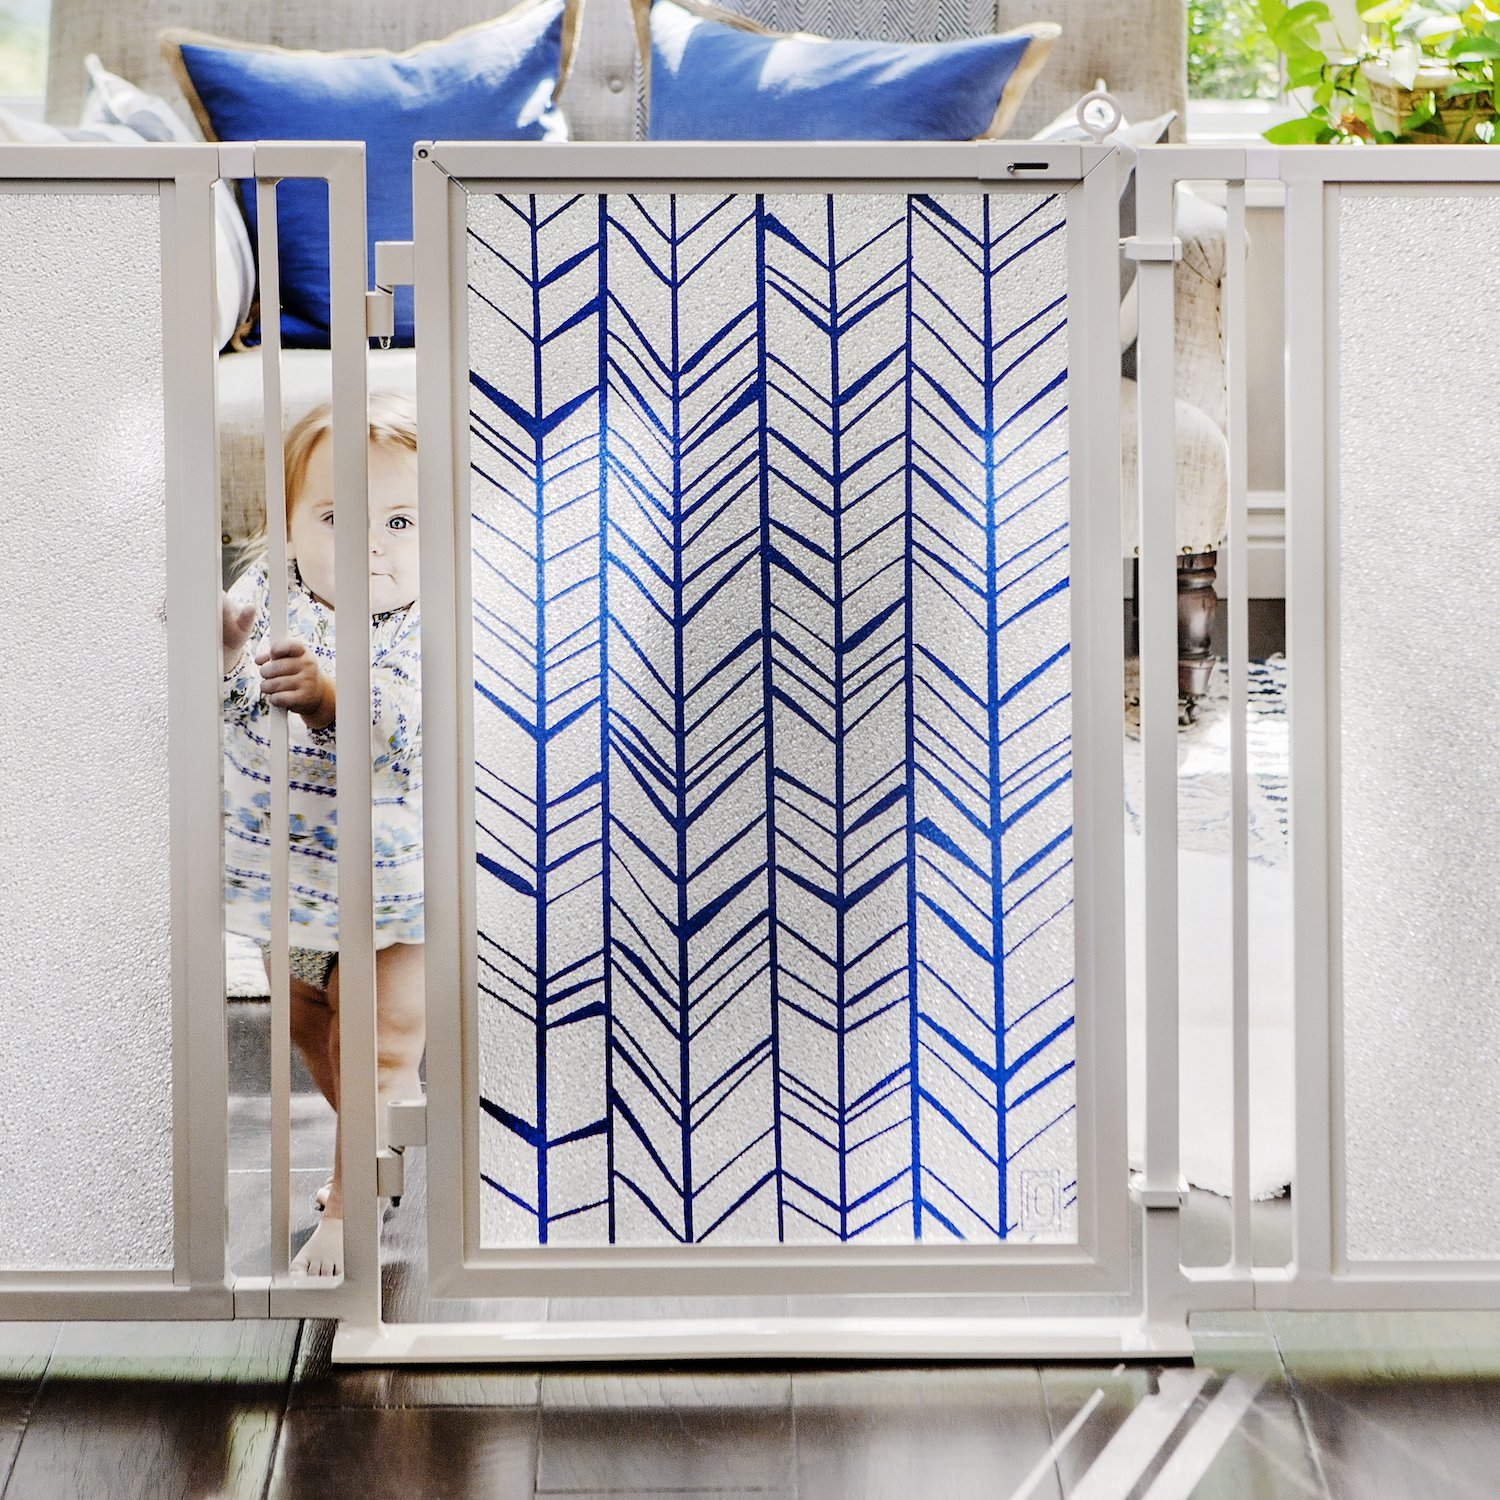 Baby & Dog Gates featuring Chevron Trail in Blue Art Screen Design from Fusion Gates (White Pearl, 36'' - 52'') by Fusion Gates